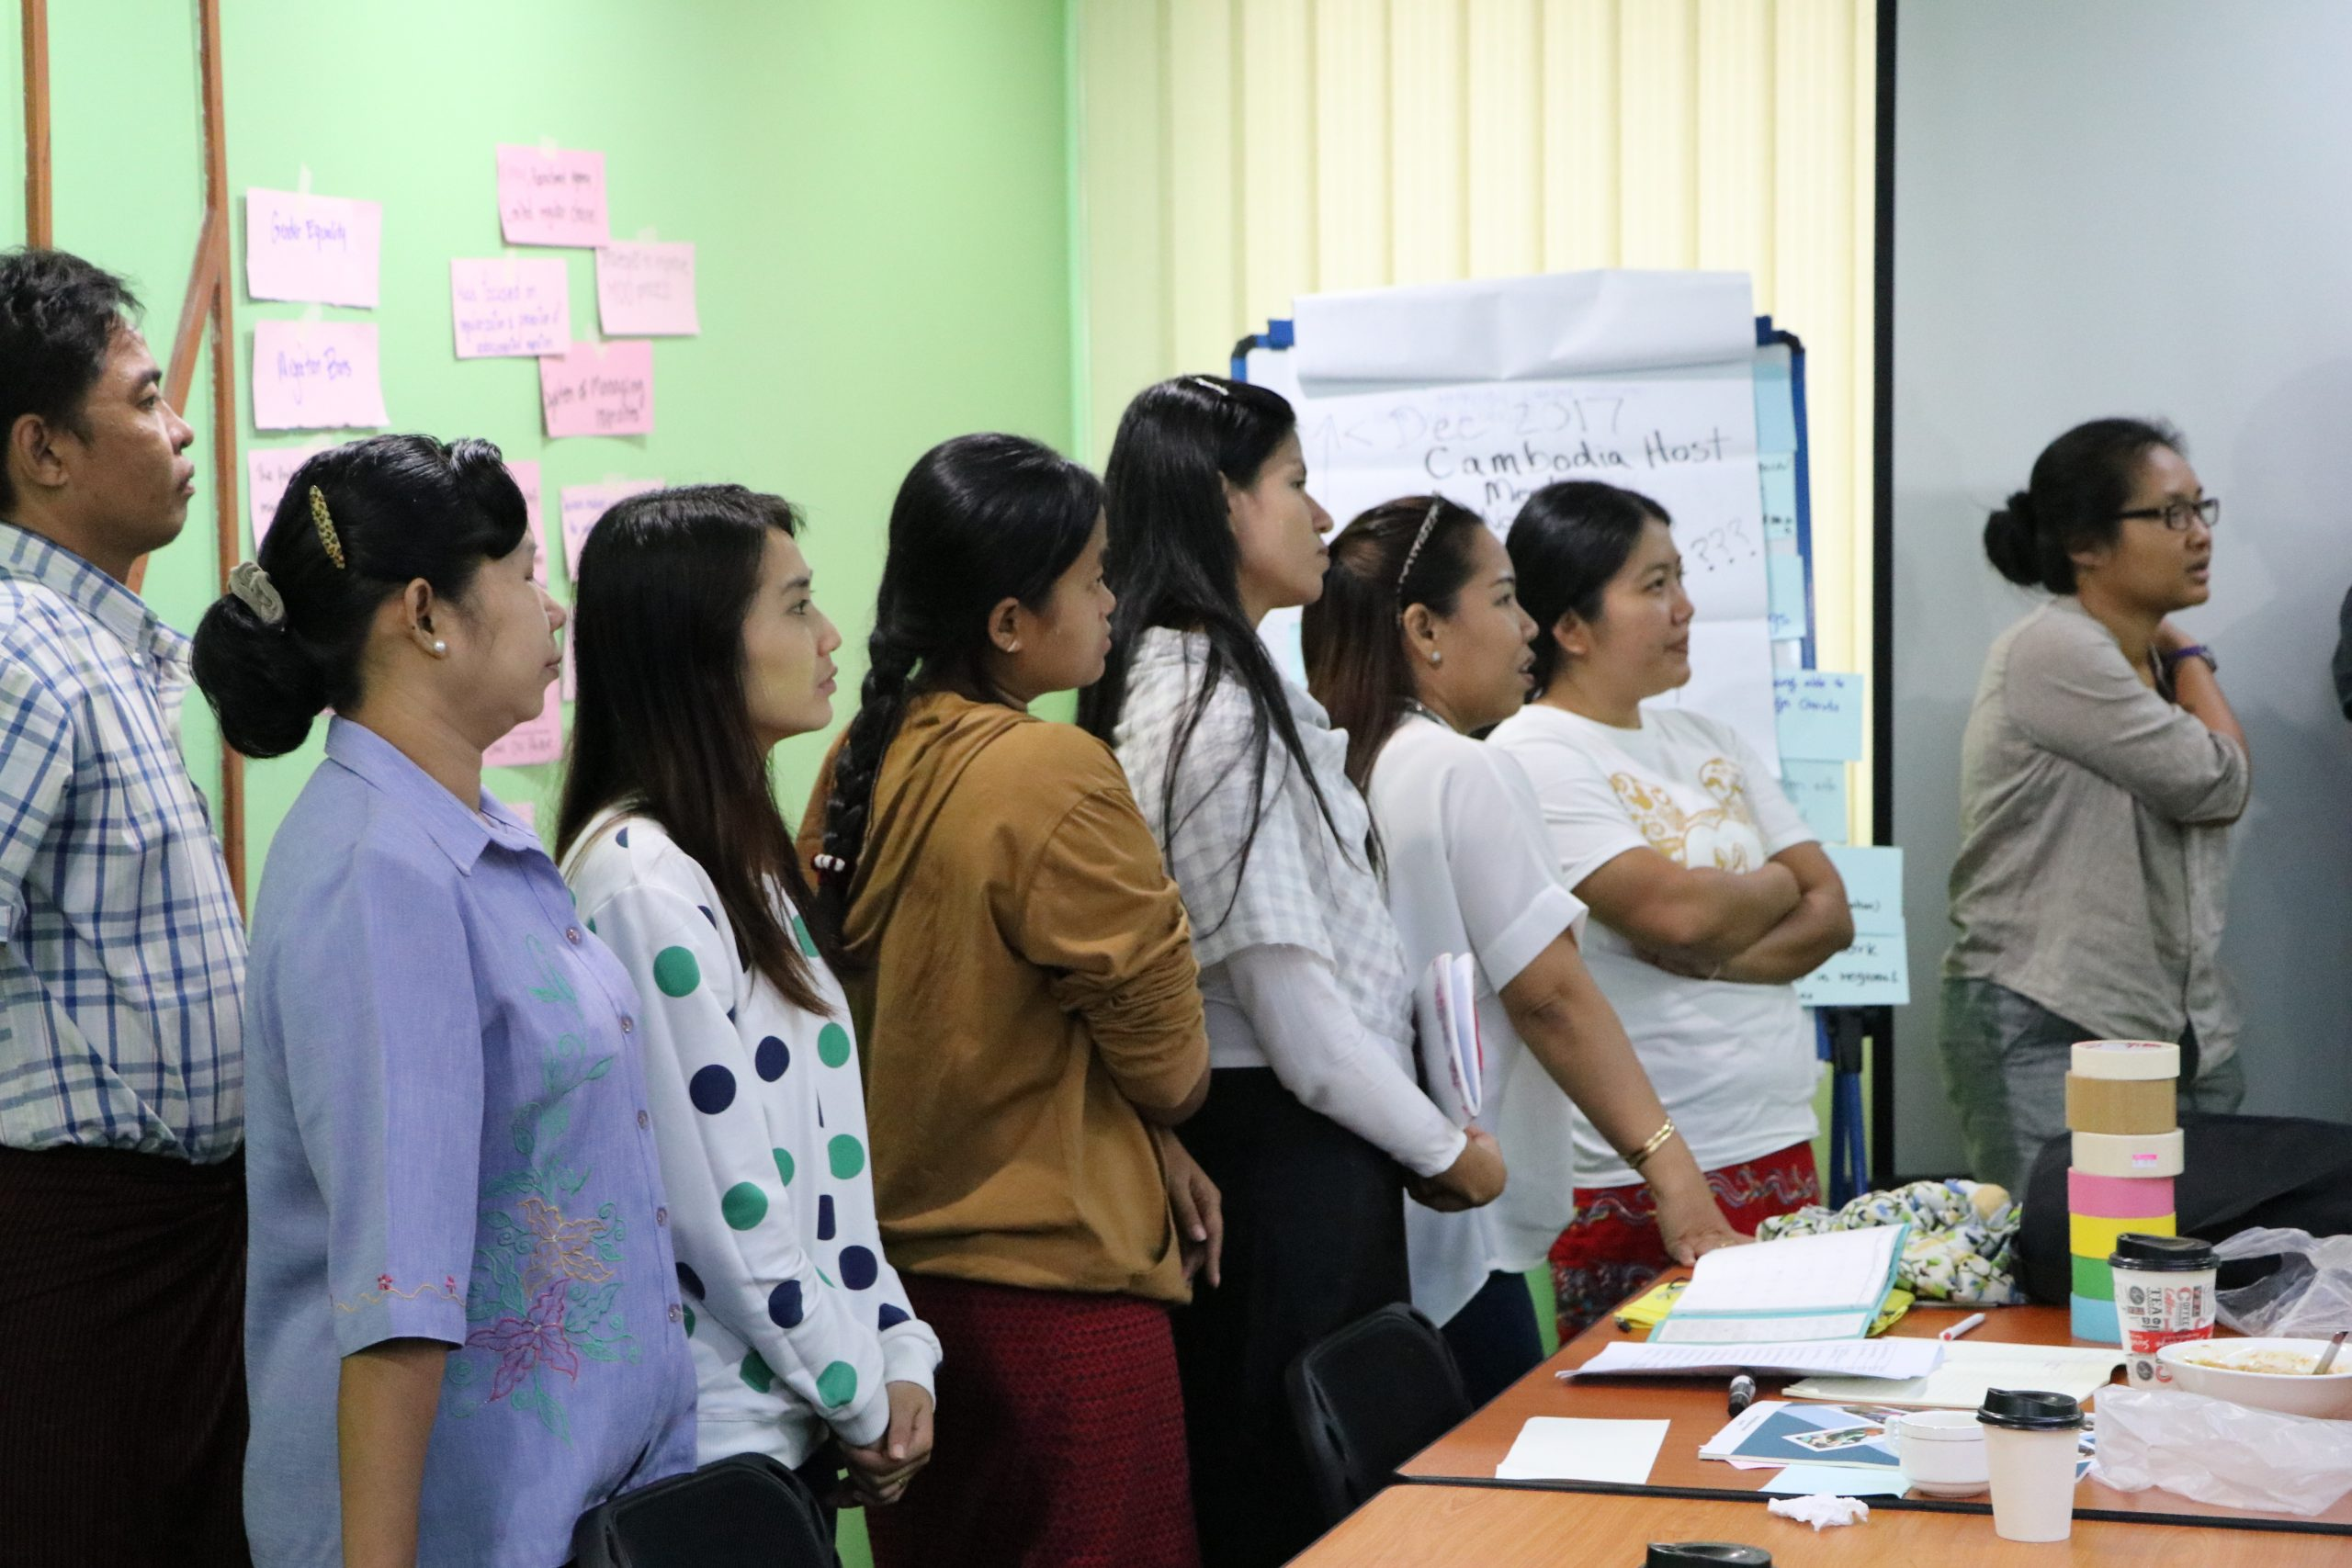 CSO reflection meeting following the first policy dialogue, July 2017, Yangon, Myanmar